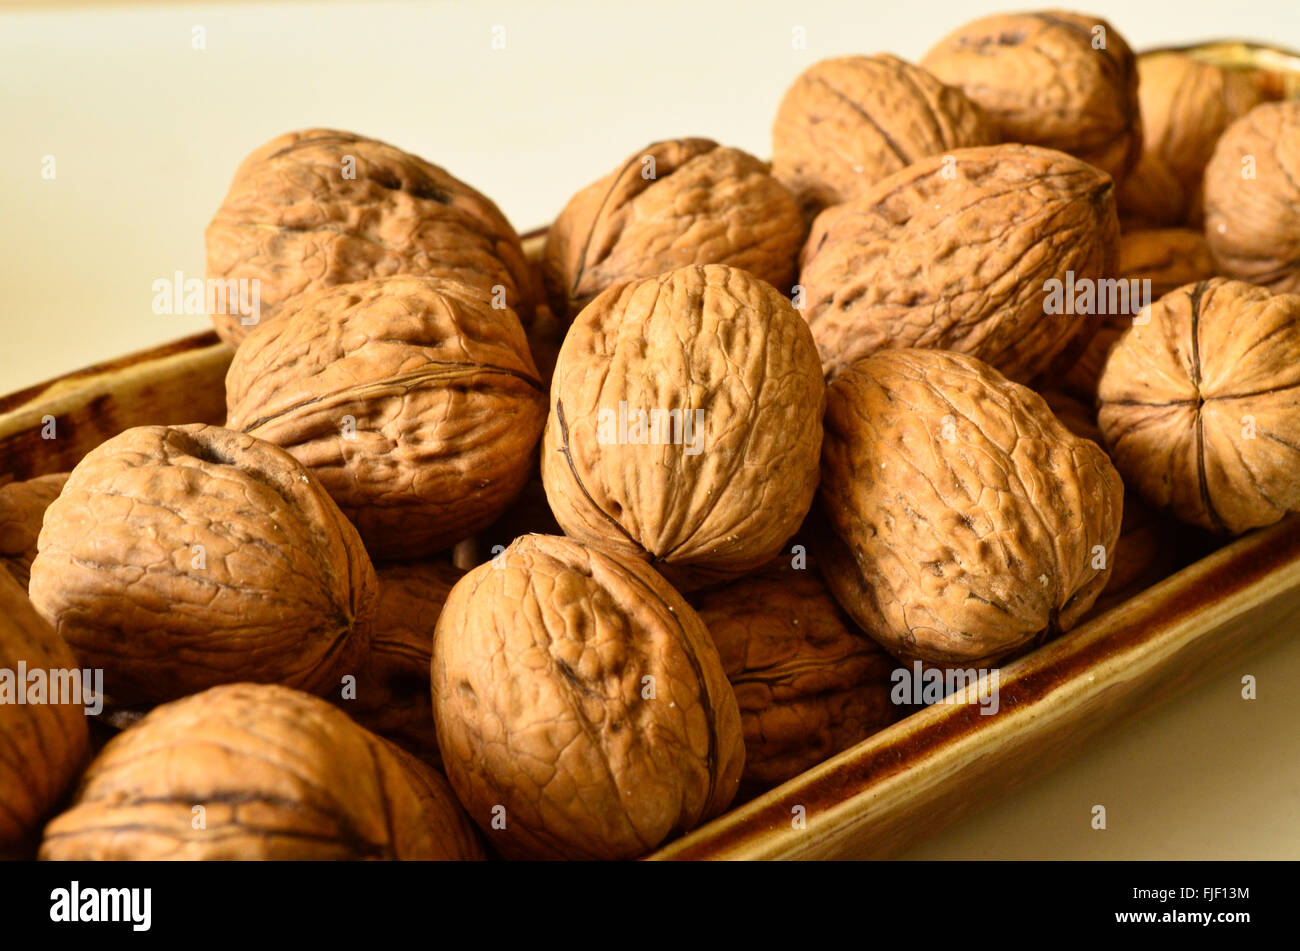 Walnuts in shells in a porcelain container. - Stock Image